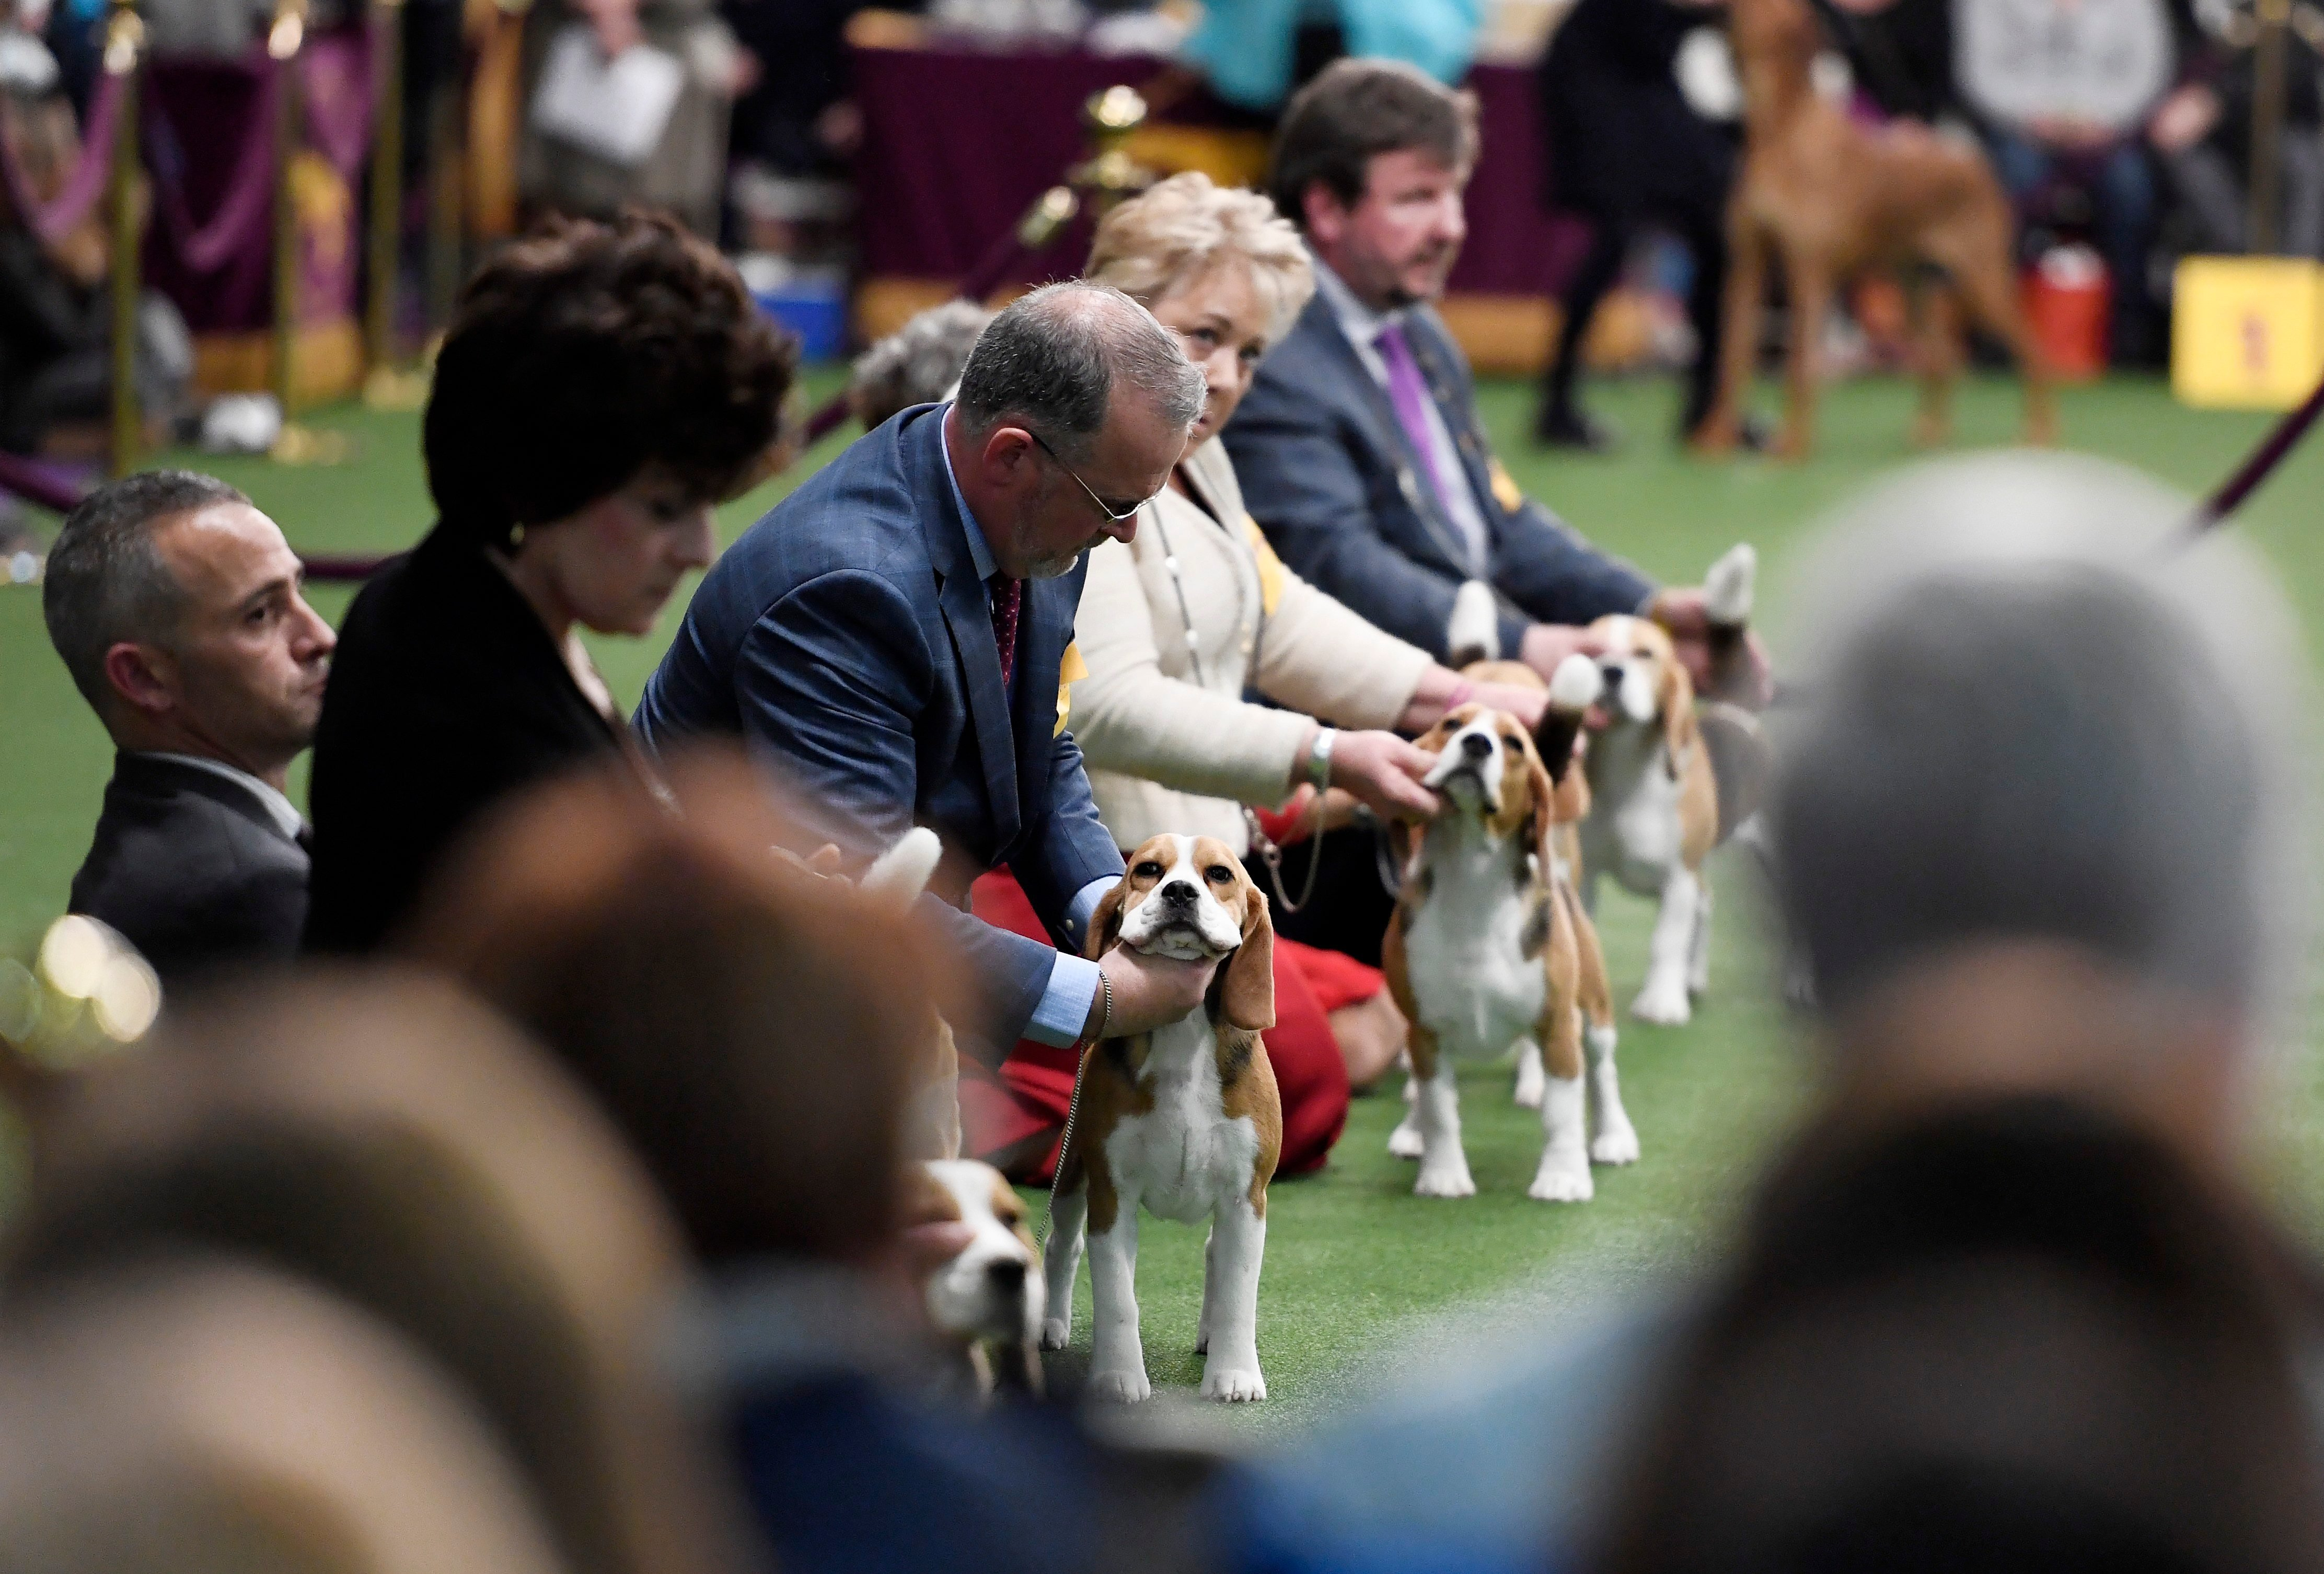 beagle westminster dog show